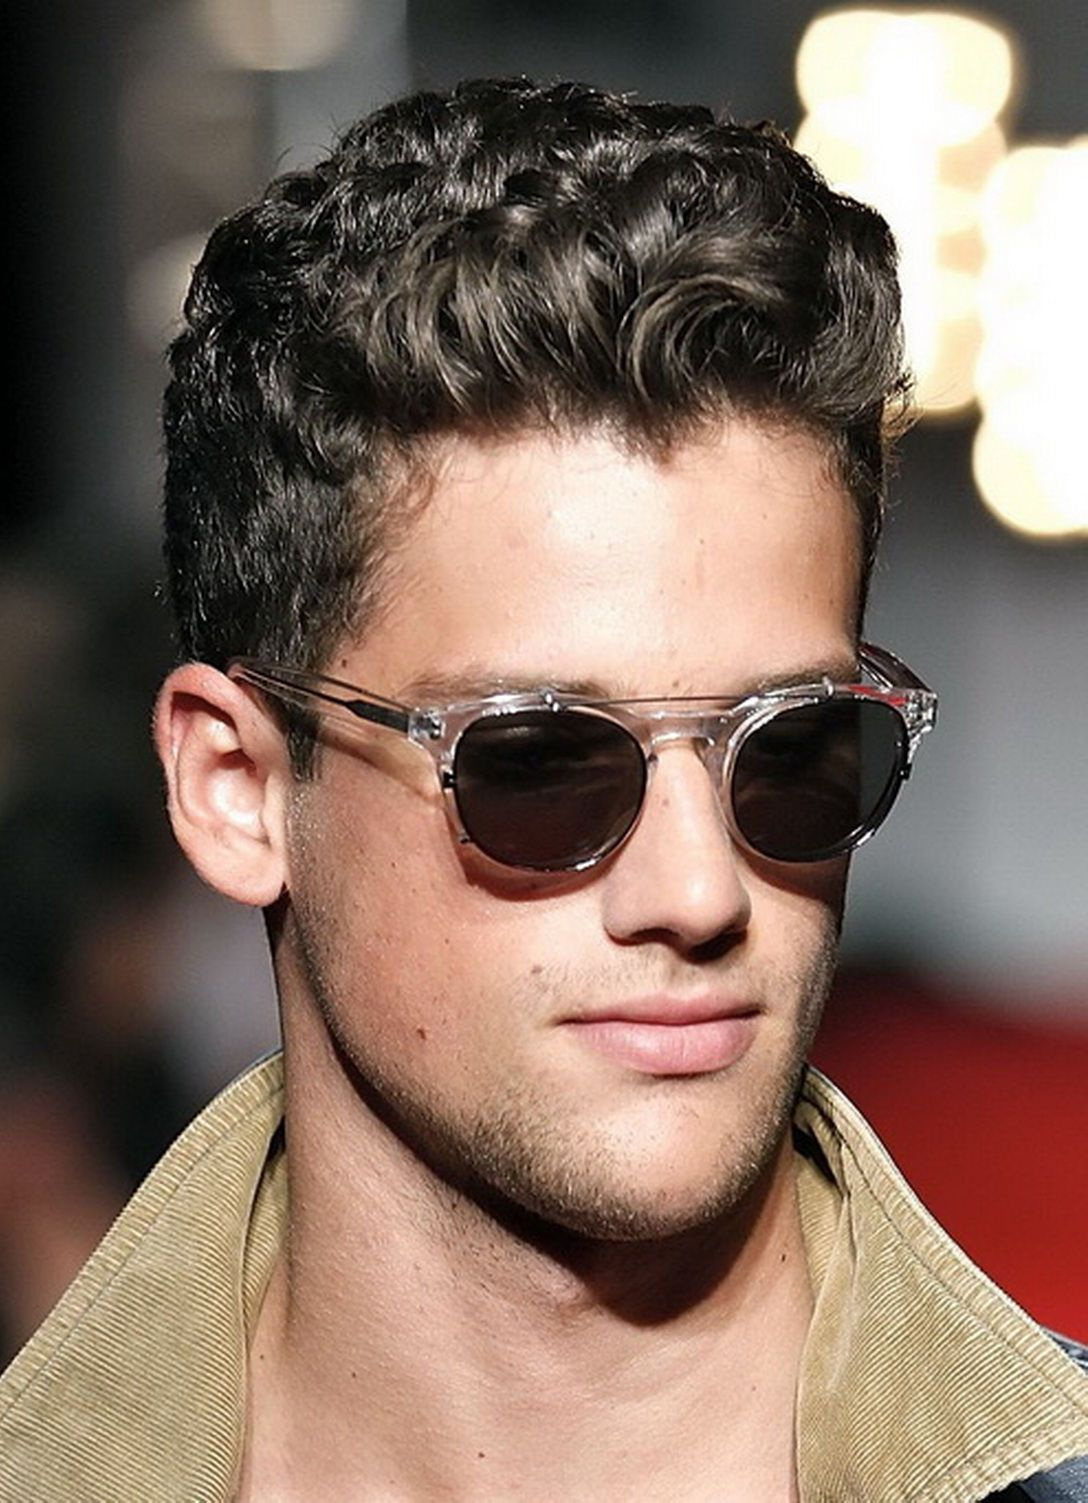 Short Hair Hairstyles For Men With Curly Hair Curly Hair Men Mens Short Curly Hairstyles Male Haircuts Curly